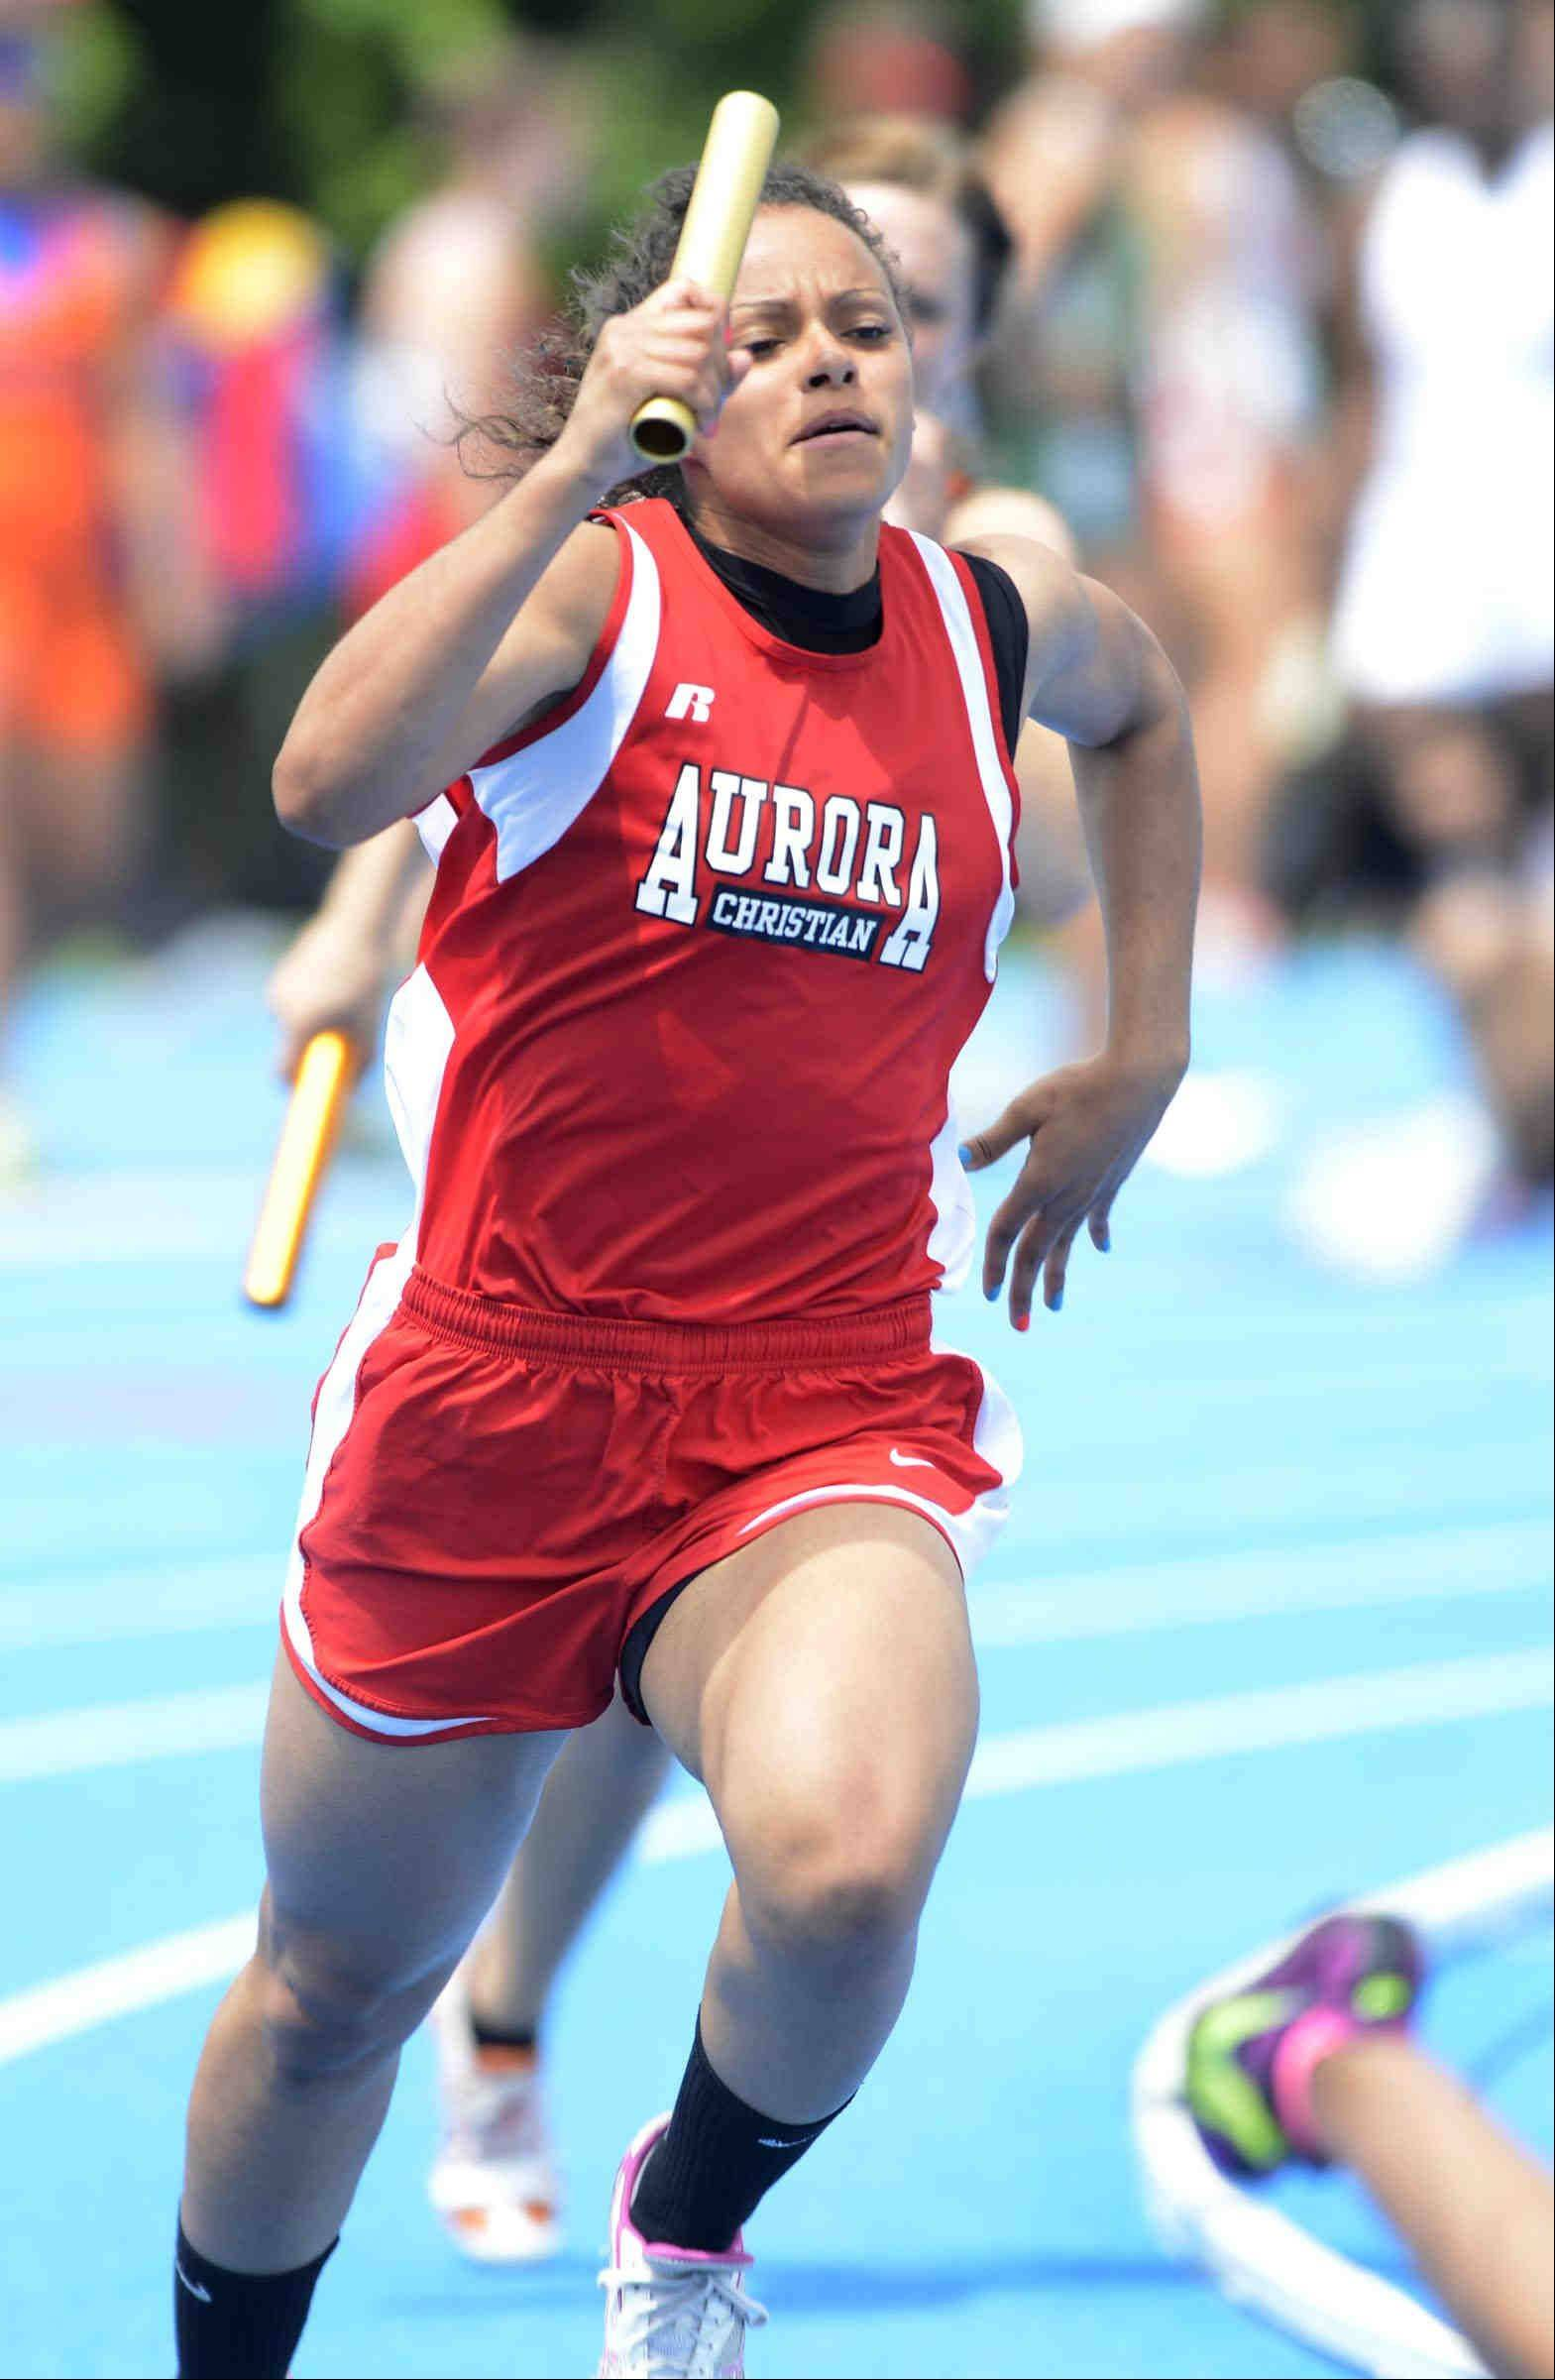 Aurora Christian's Alyssa Andersen runs the first leg of the 400 meter relay Saturday at the Class 1A girls state track and field finals at O'Brien Stadium at Eastern Illinois University in Charleston. They placed second.